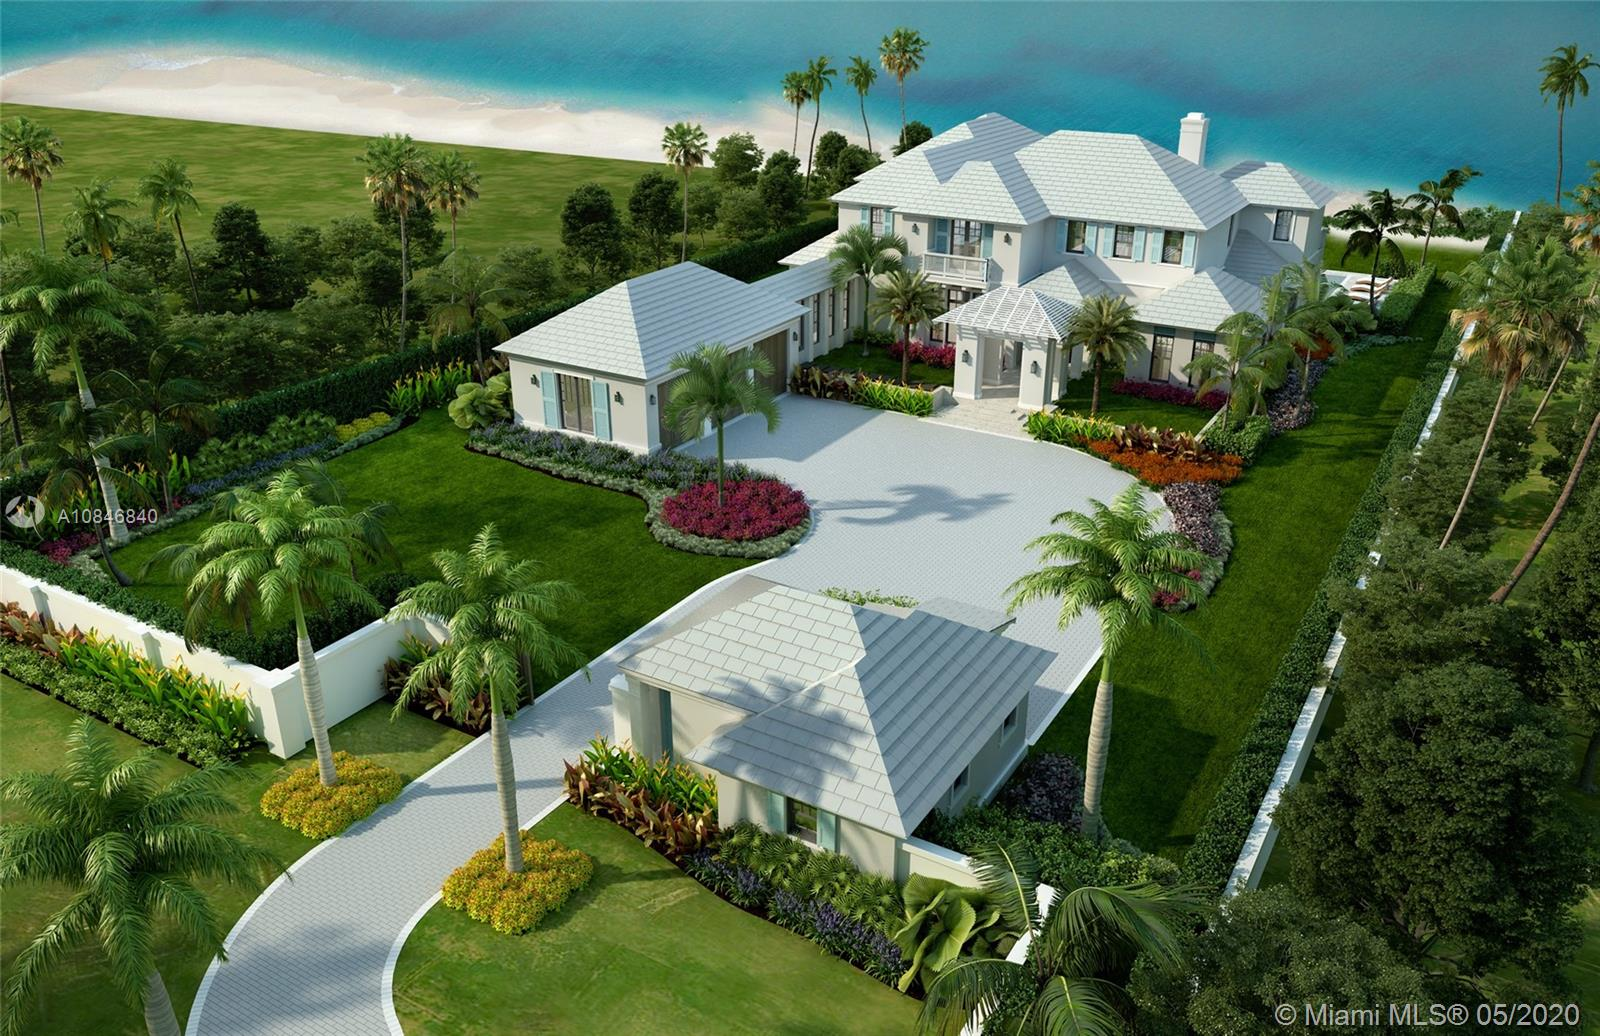 image #1 of property, Gulfstream Ocean Trs